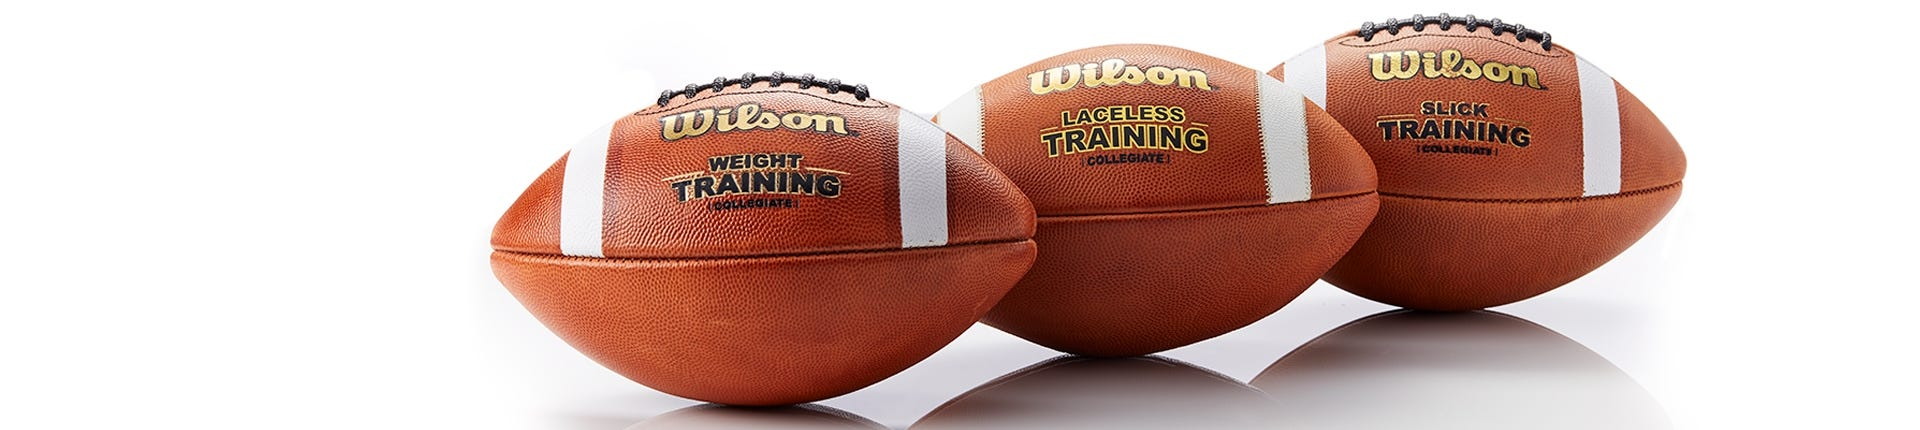 Wilson training and practice footballs